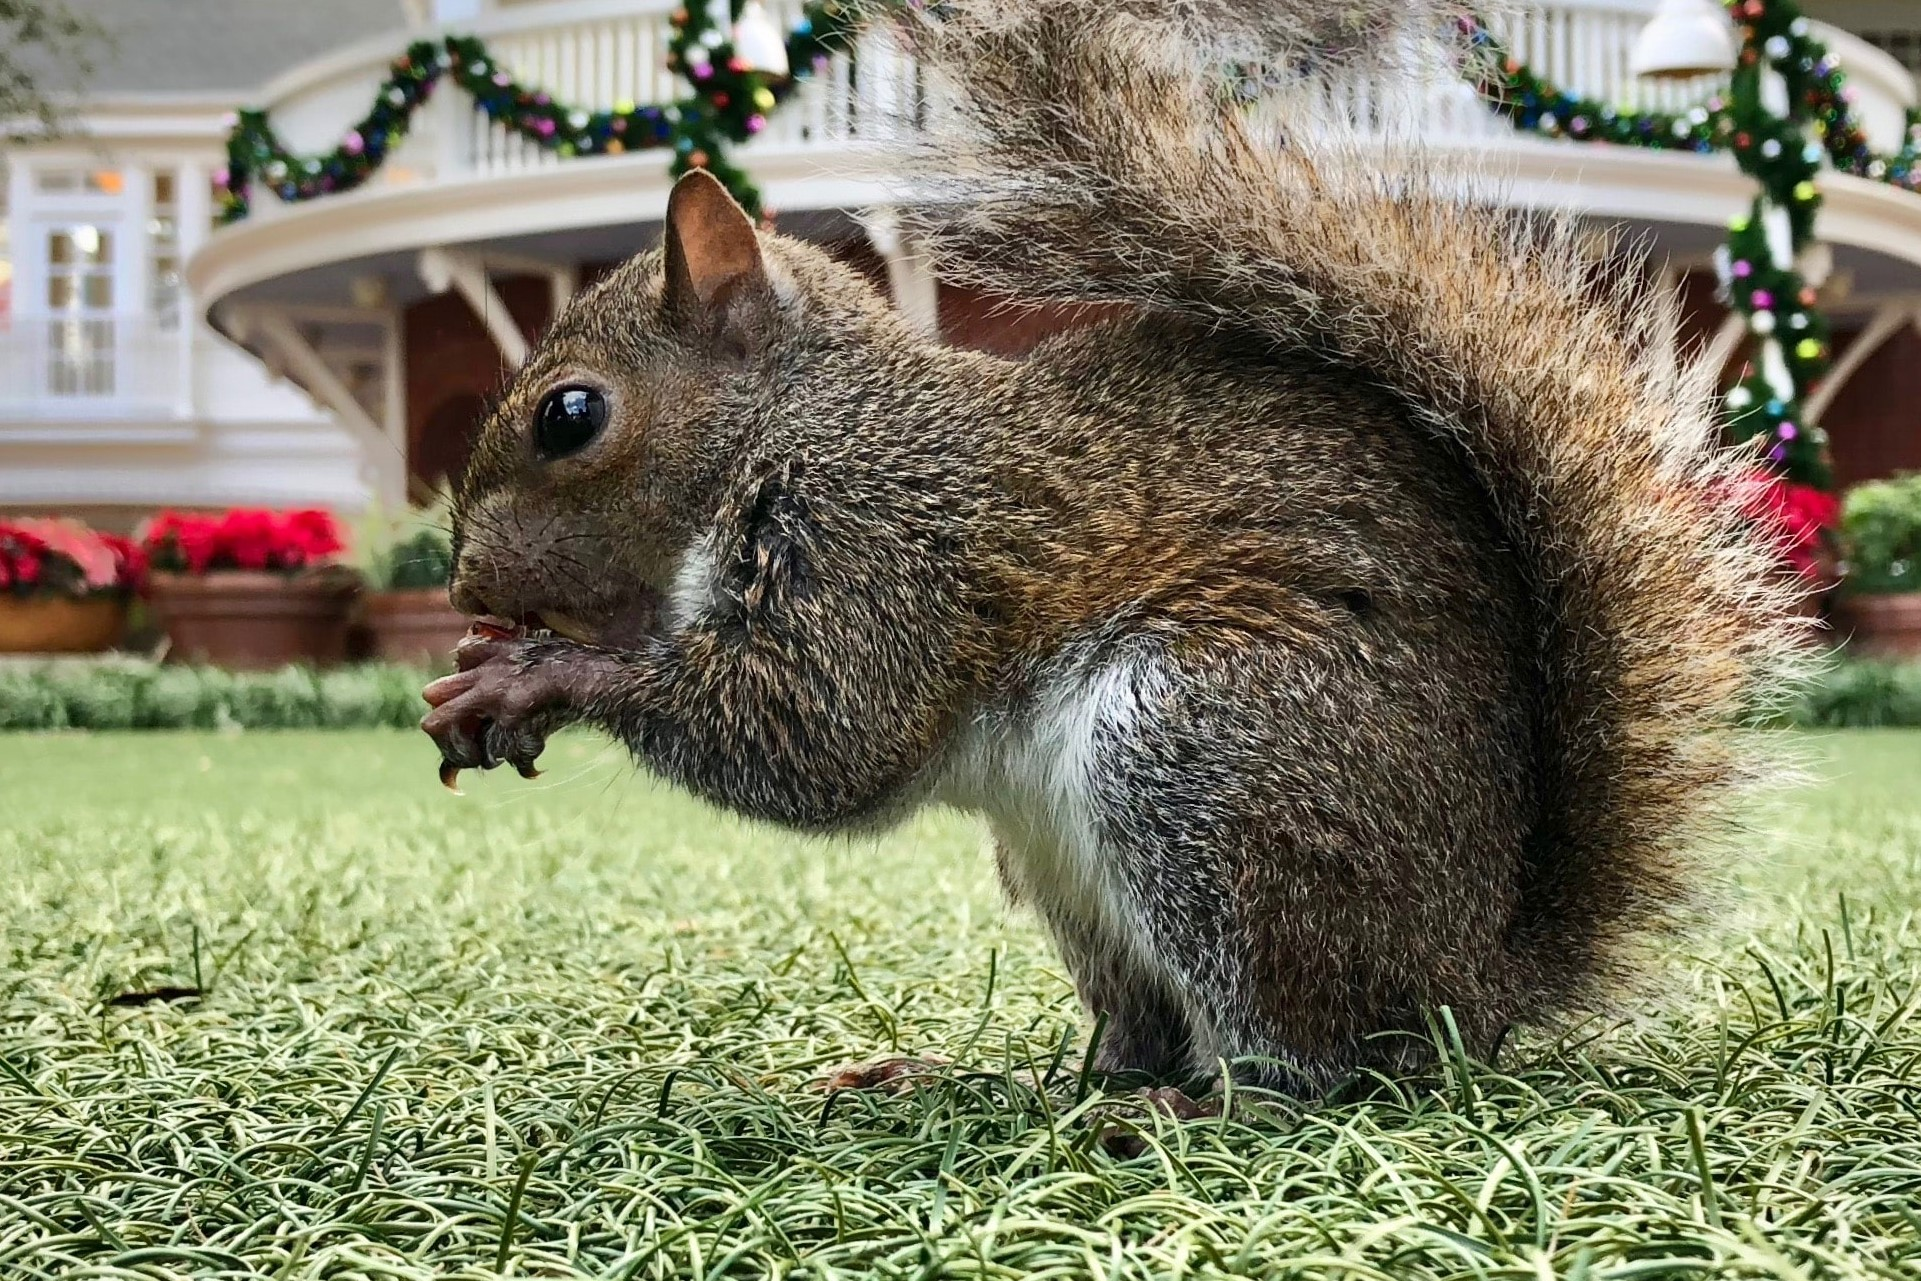 squirrel-in-house